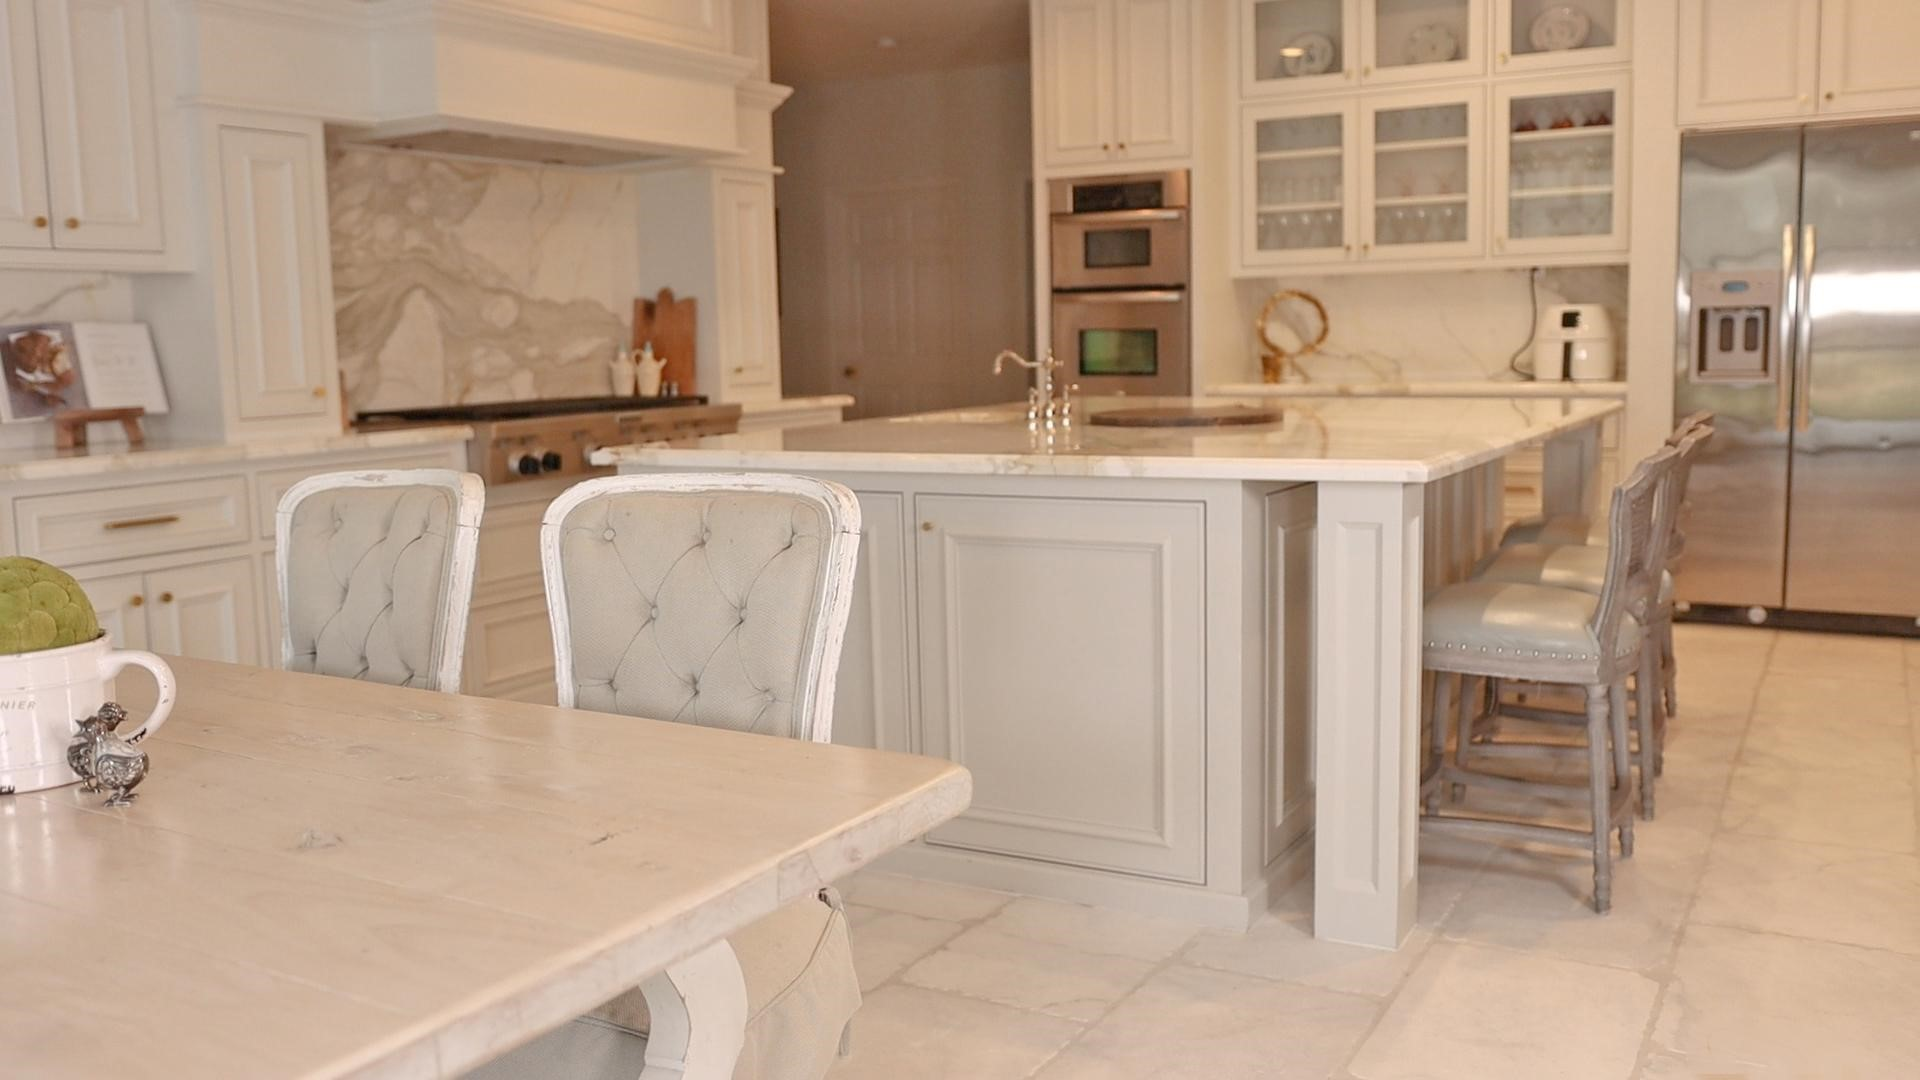 A view of white and gray farmhouse style kitchen with breakfast nook and kitchen counter seating